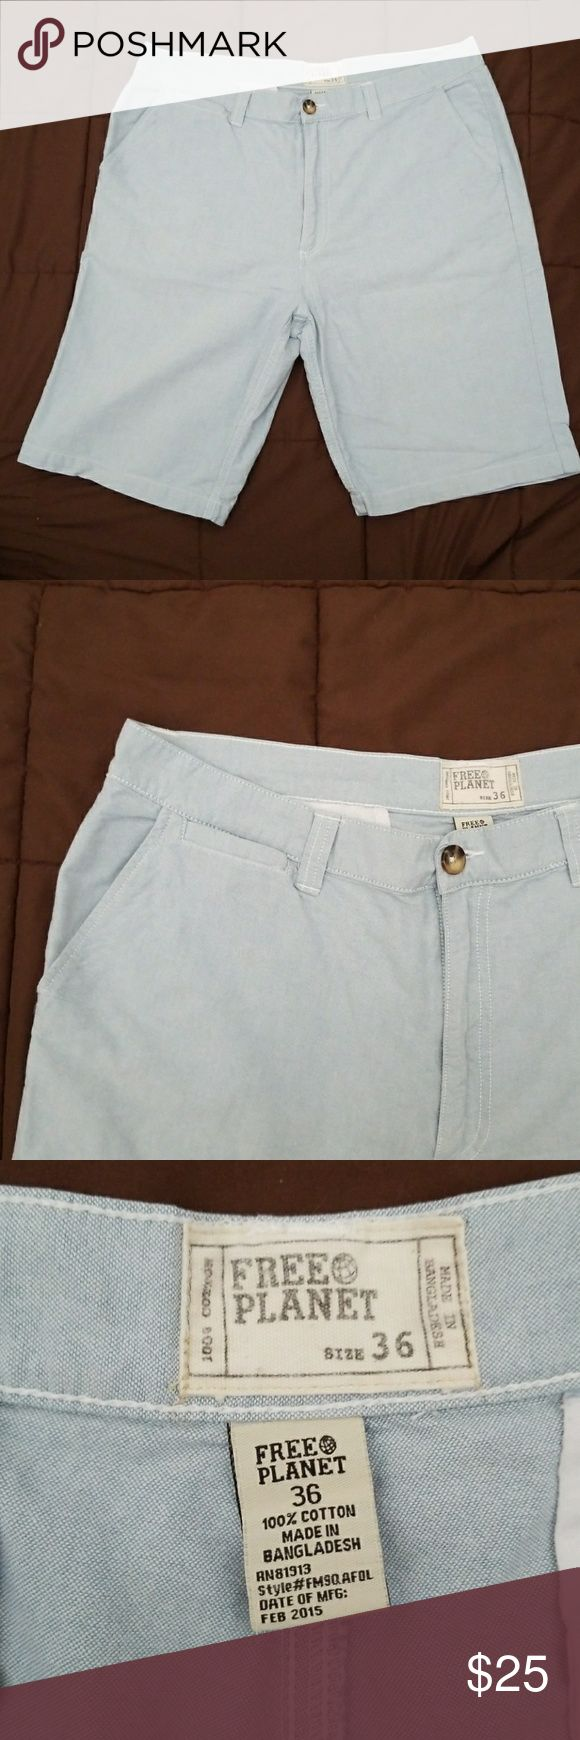 💙 MEN'S DRESS SHORTS 💙 FROM MY HUBBYS CLOSET ! FREE PLANET DRESS SHORTS  SIZE 36 COLOR LIGHT BLUE 100 %COTTON  INSEAM 9.5 INCHES  IN GREAT  CONDITION! Free Planet Shorts